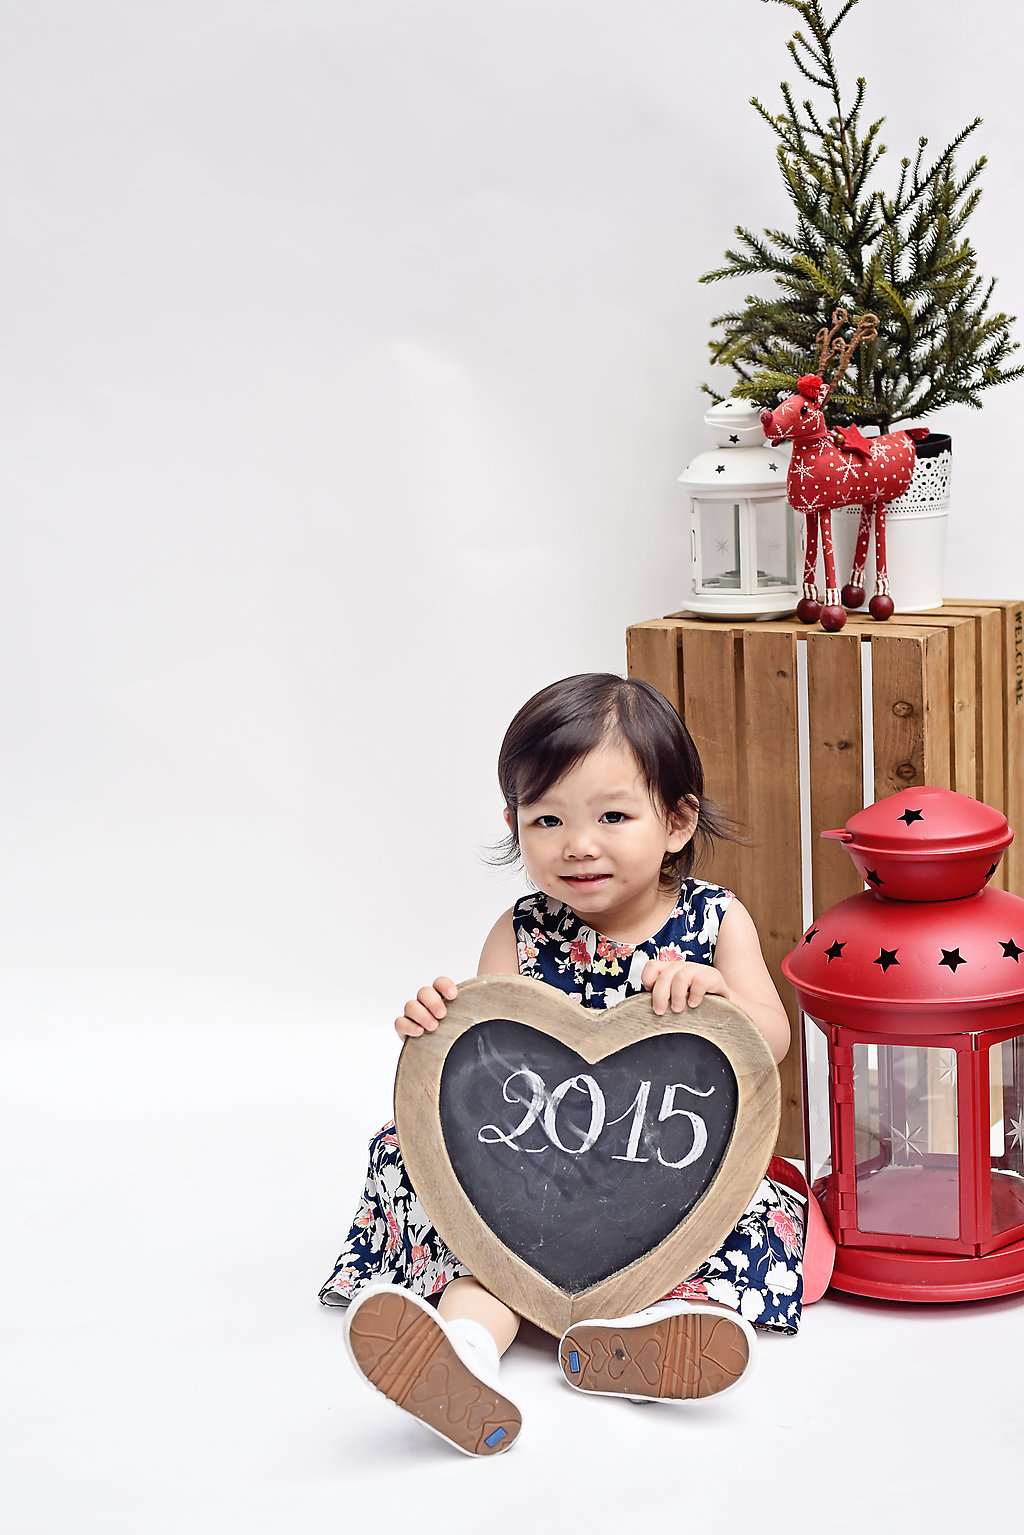 Fun Family Photo Ideas for Your Holiday Cards